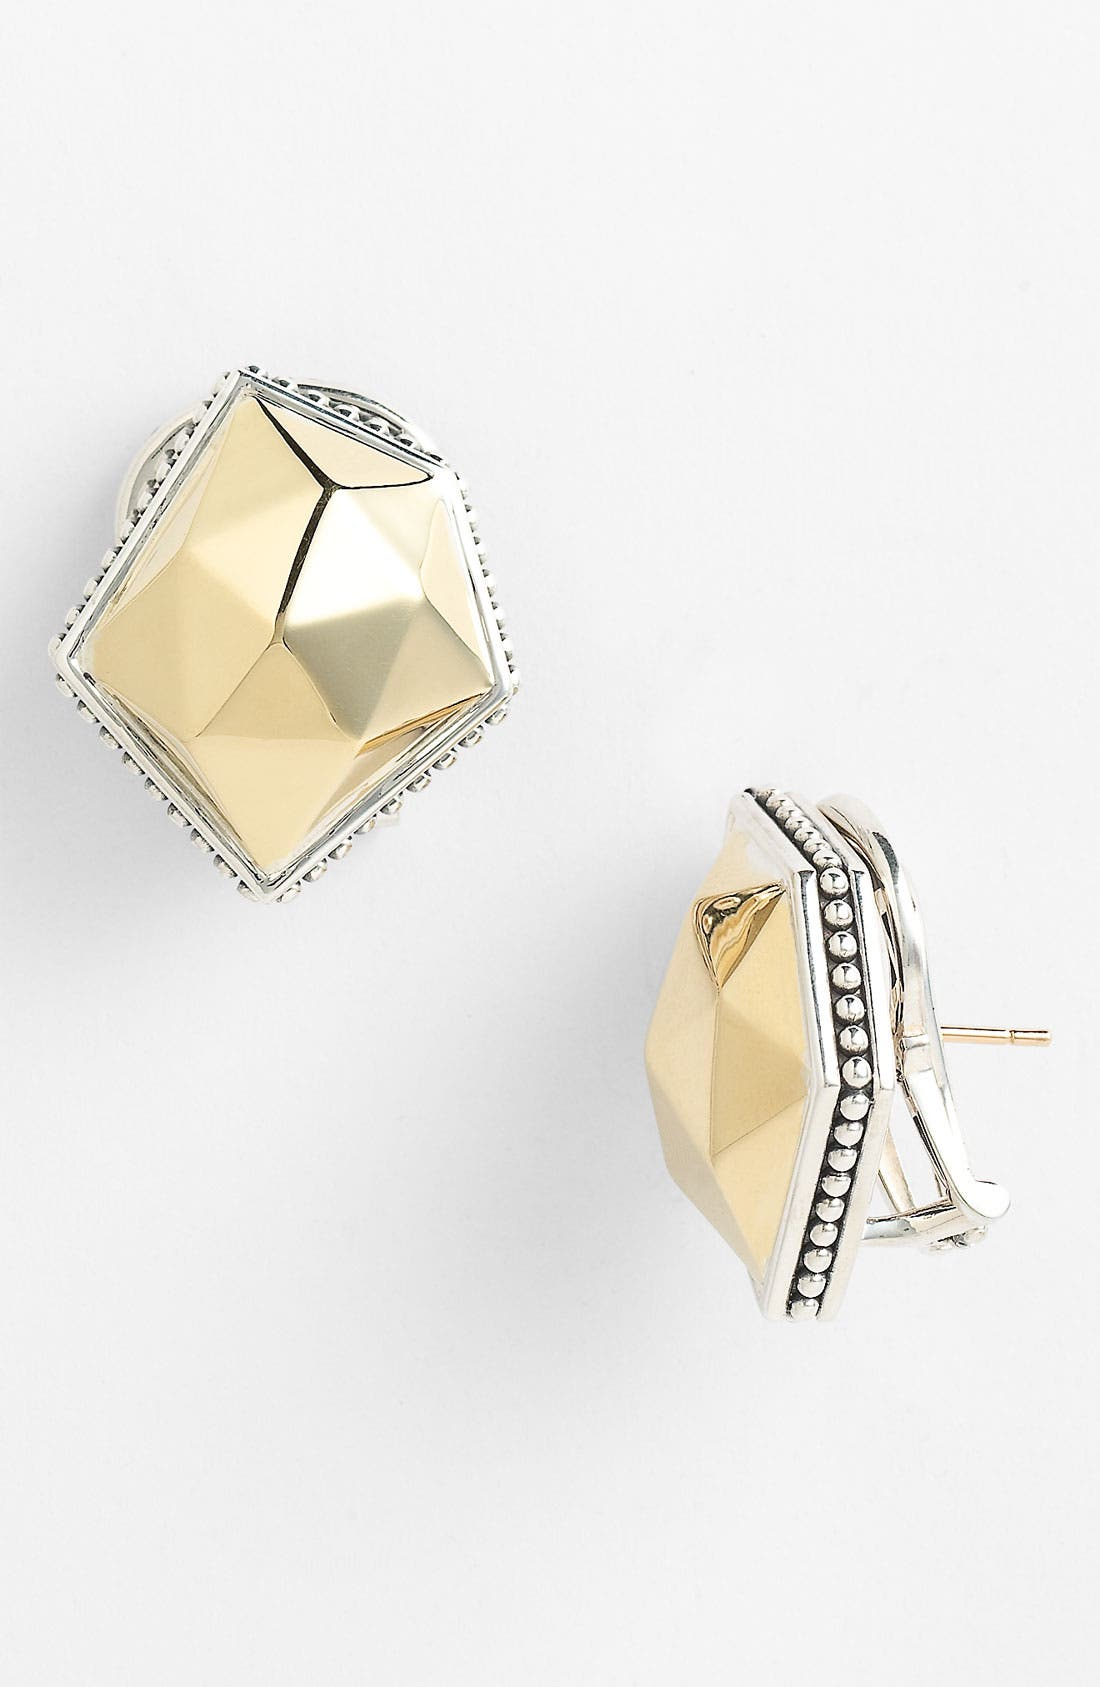 Main Image - LAGOS 'Rocks' Medium Angled Two Tone Earrings